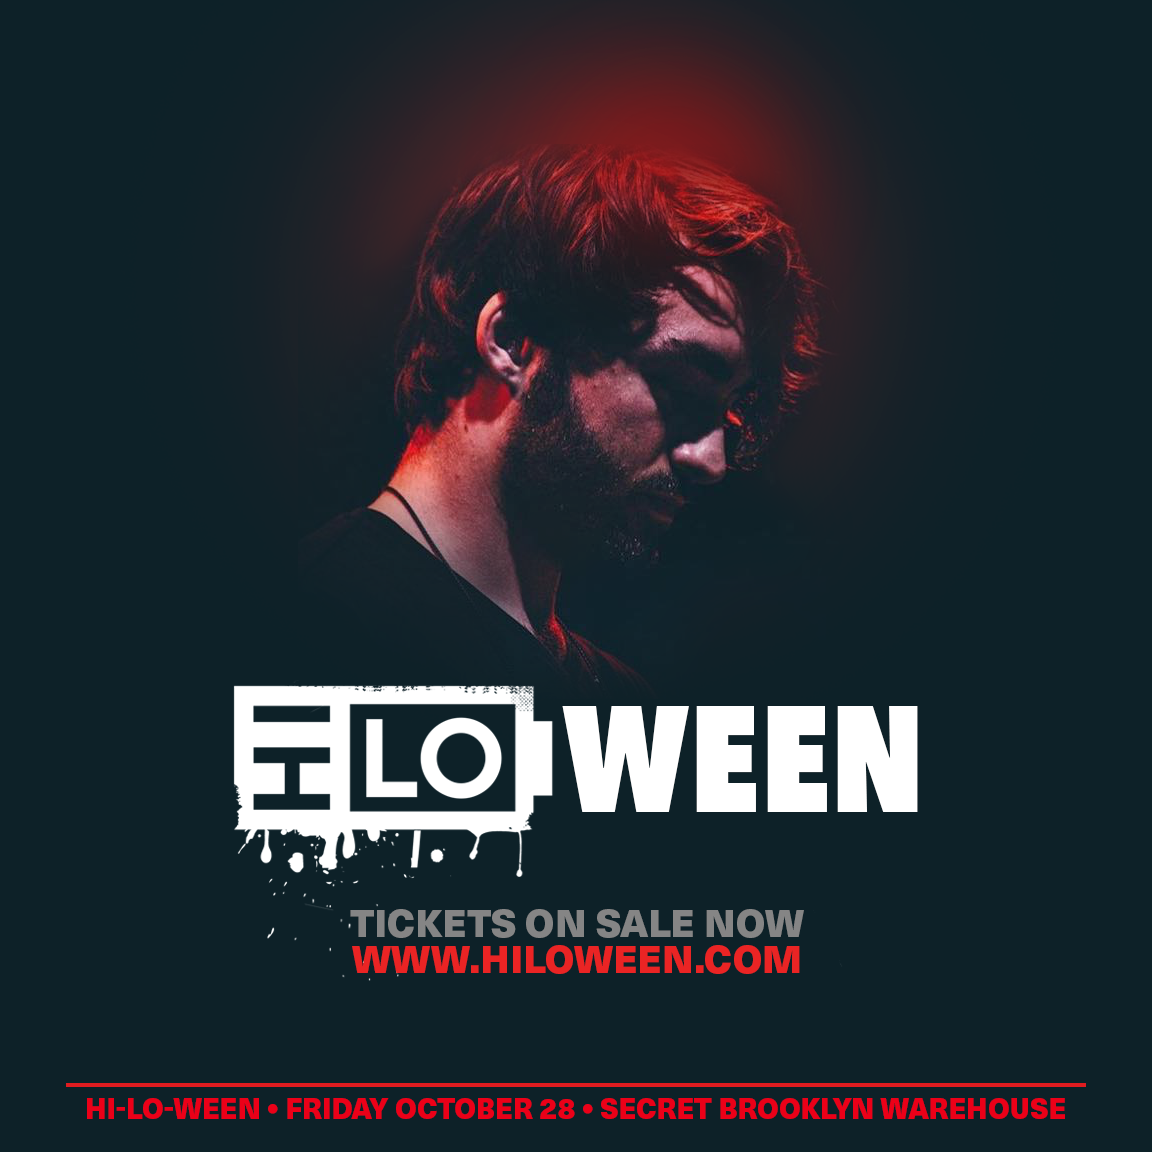 hi-lo-ween in nyc [event preview] | your edm